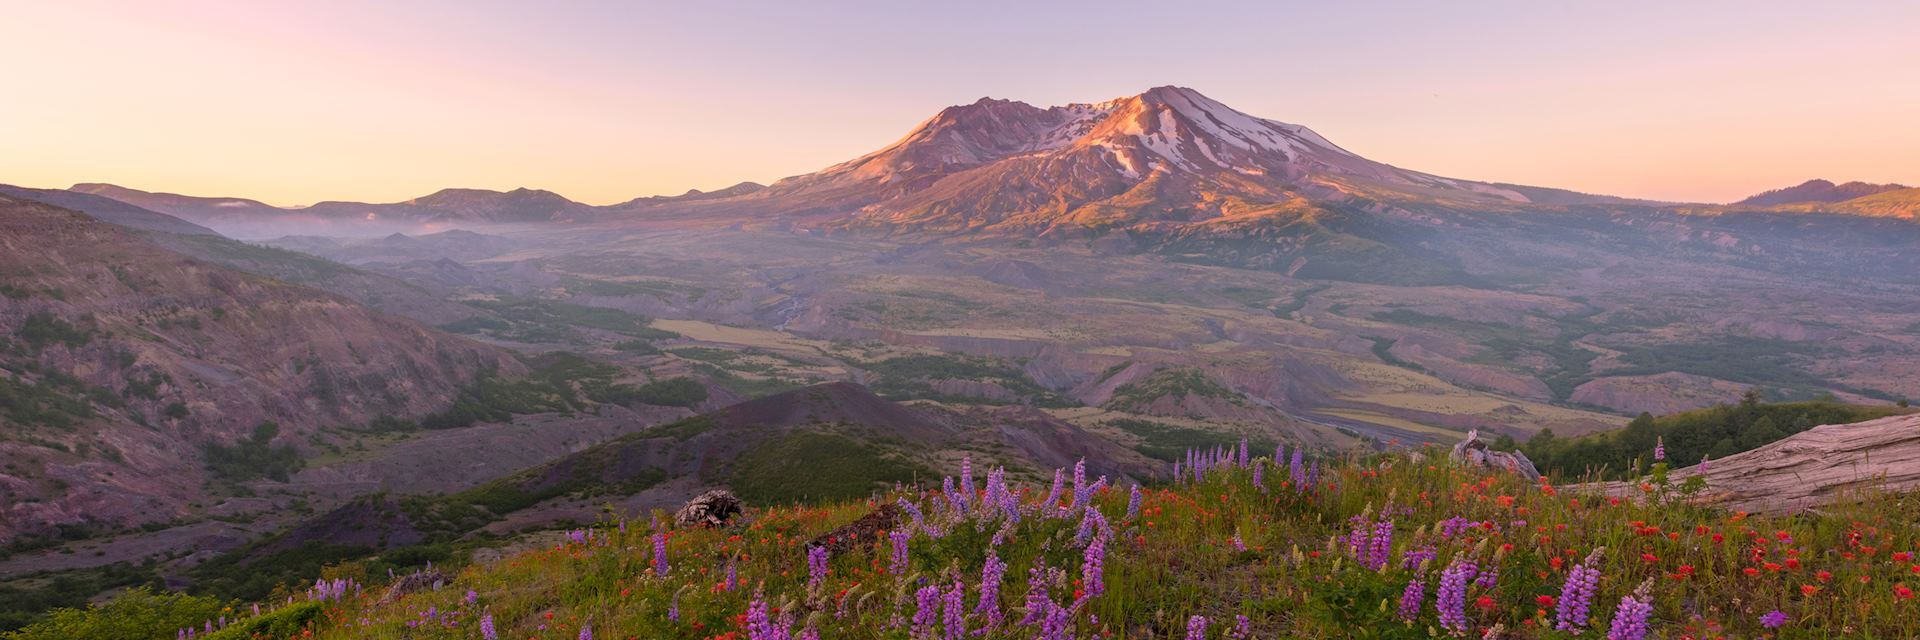 Sunrise at Mount St. Helens